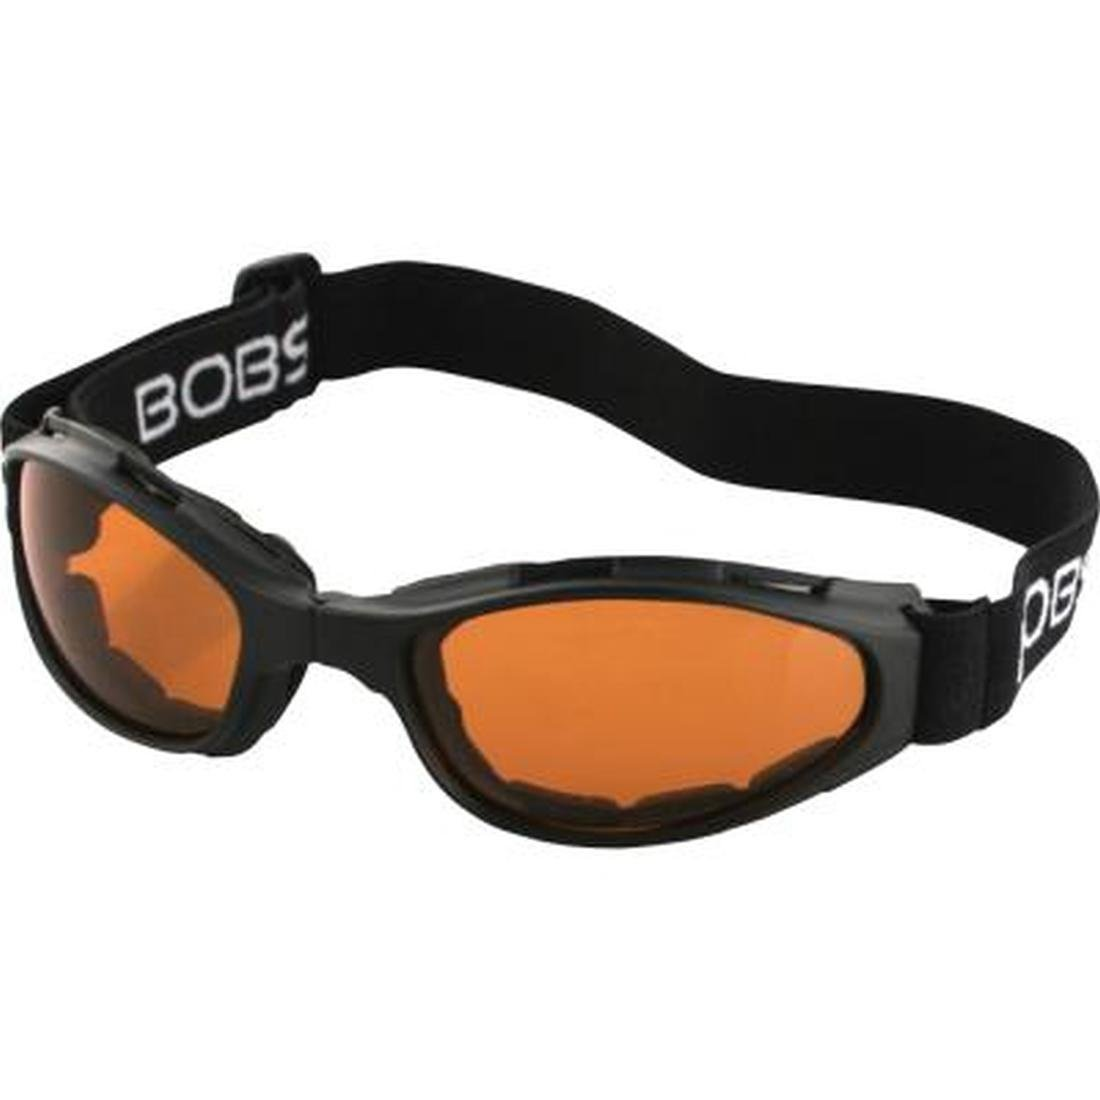 825cb5cf271 Amazon.com  Bobster Crossfire Folding Adult Cruiser Motorcycle Goggles  Eyewear - Black Amber   One Size Fits All  Automotive